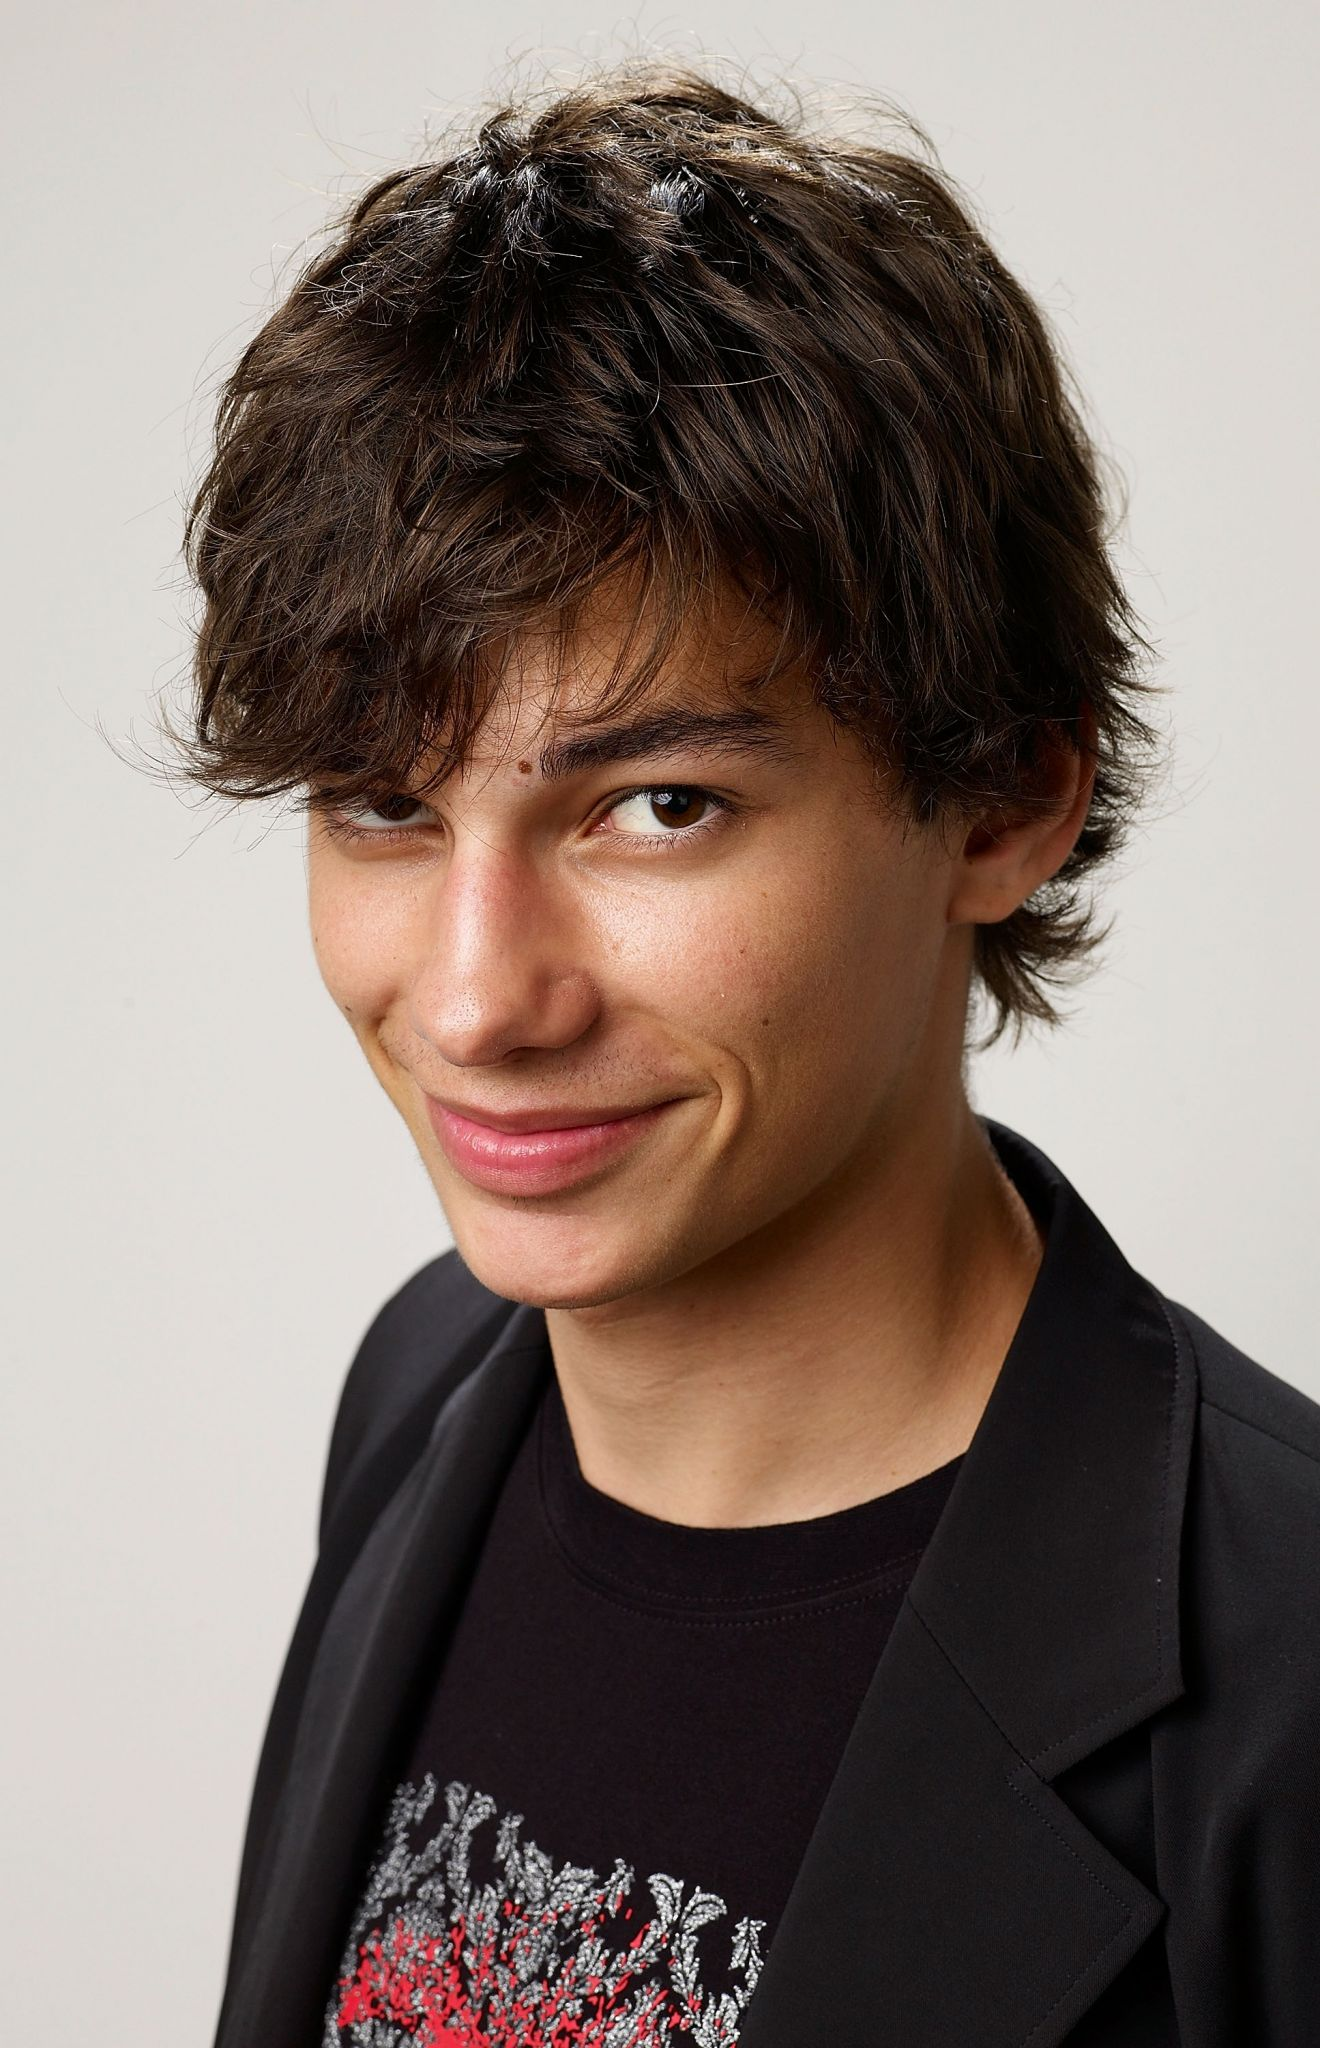 Devon Bostick - 2017 Regular Brown hair & chignon hair style. Current length:  short hair